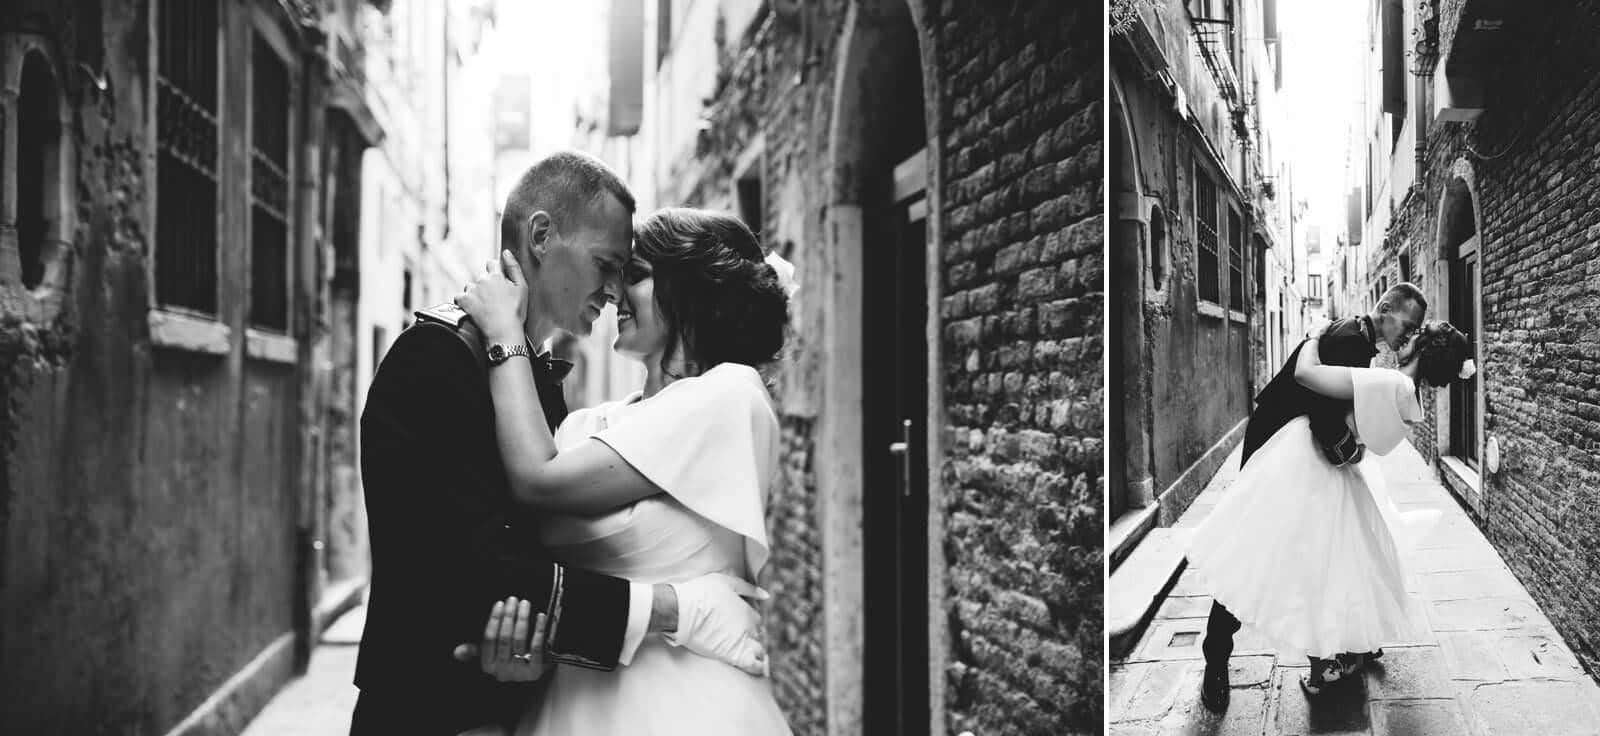 Belmond Hotel Cipriani Venice wedding | AV-PHOTOGRAPHY